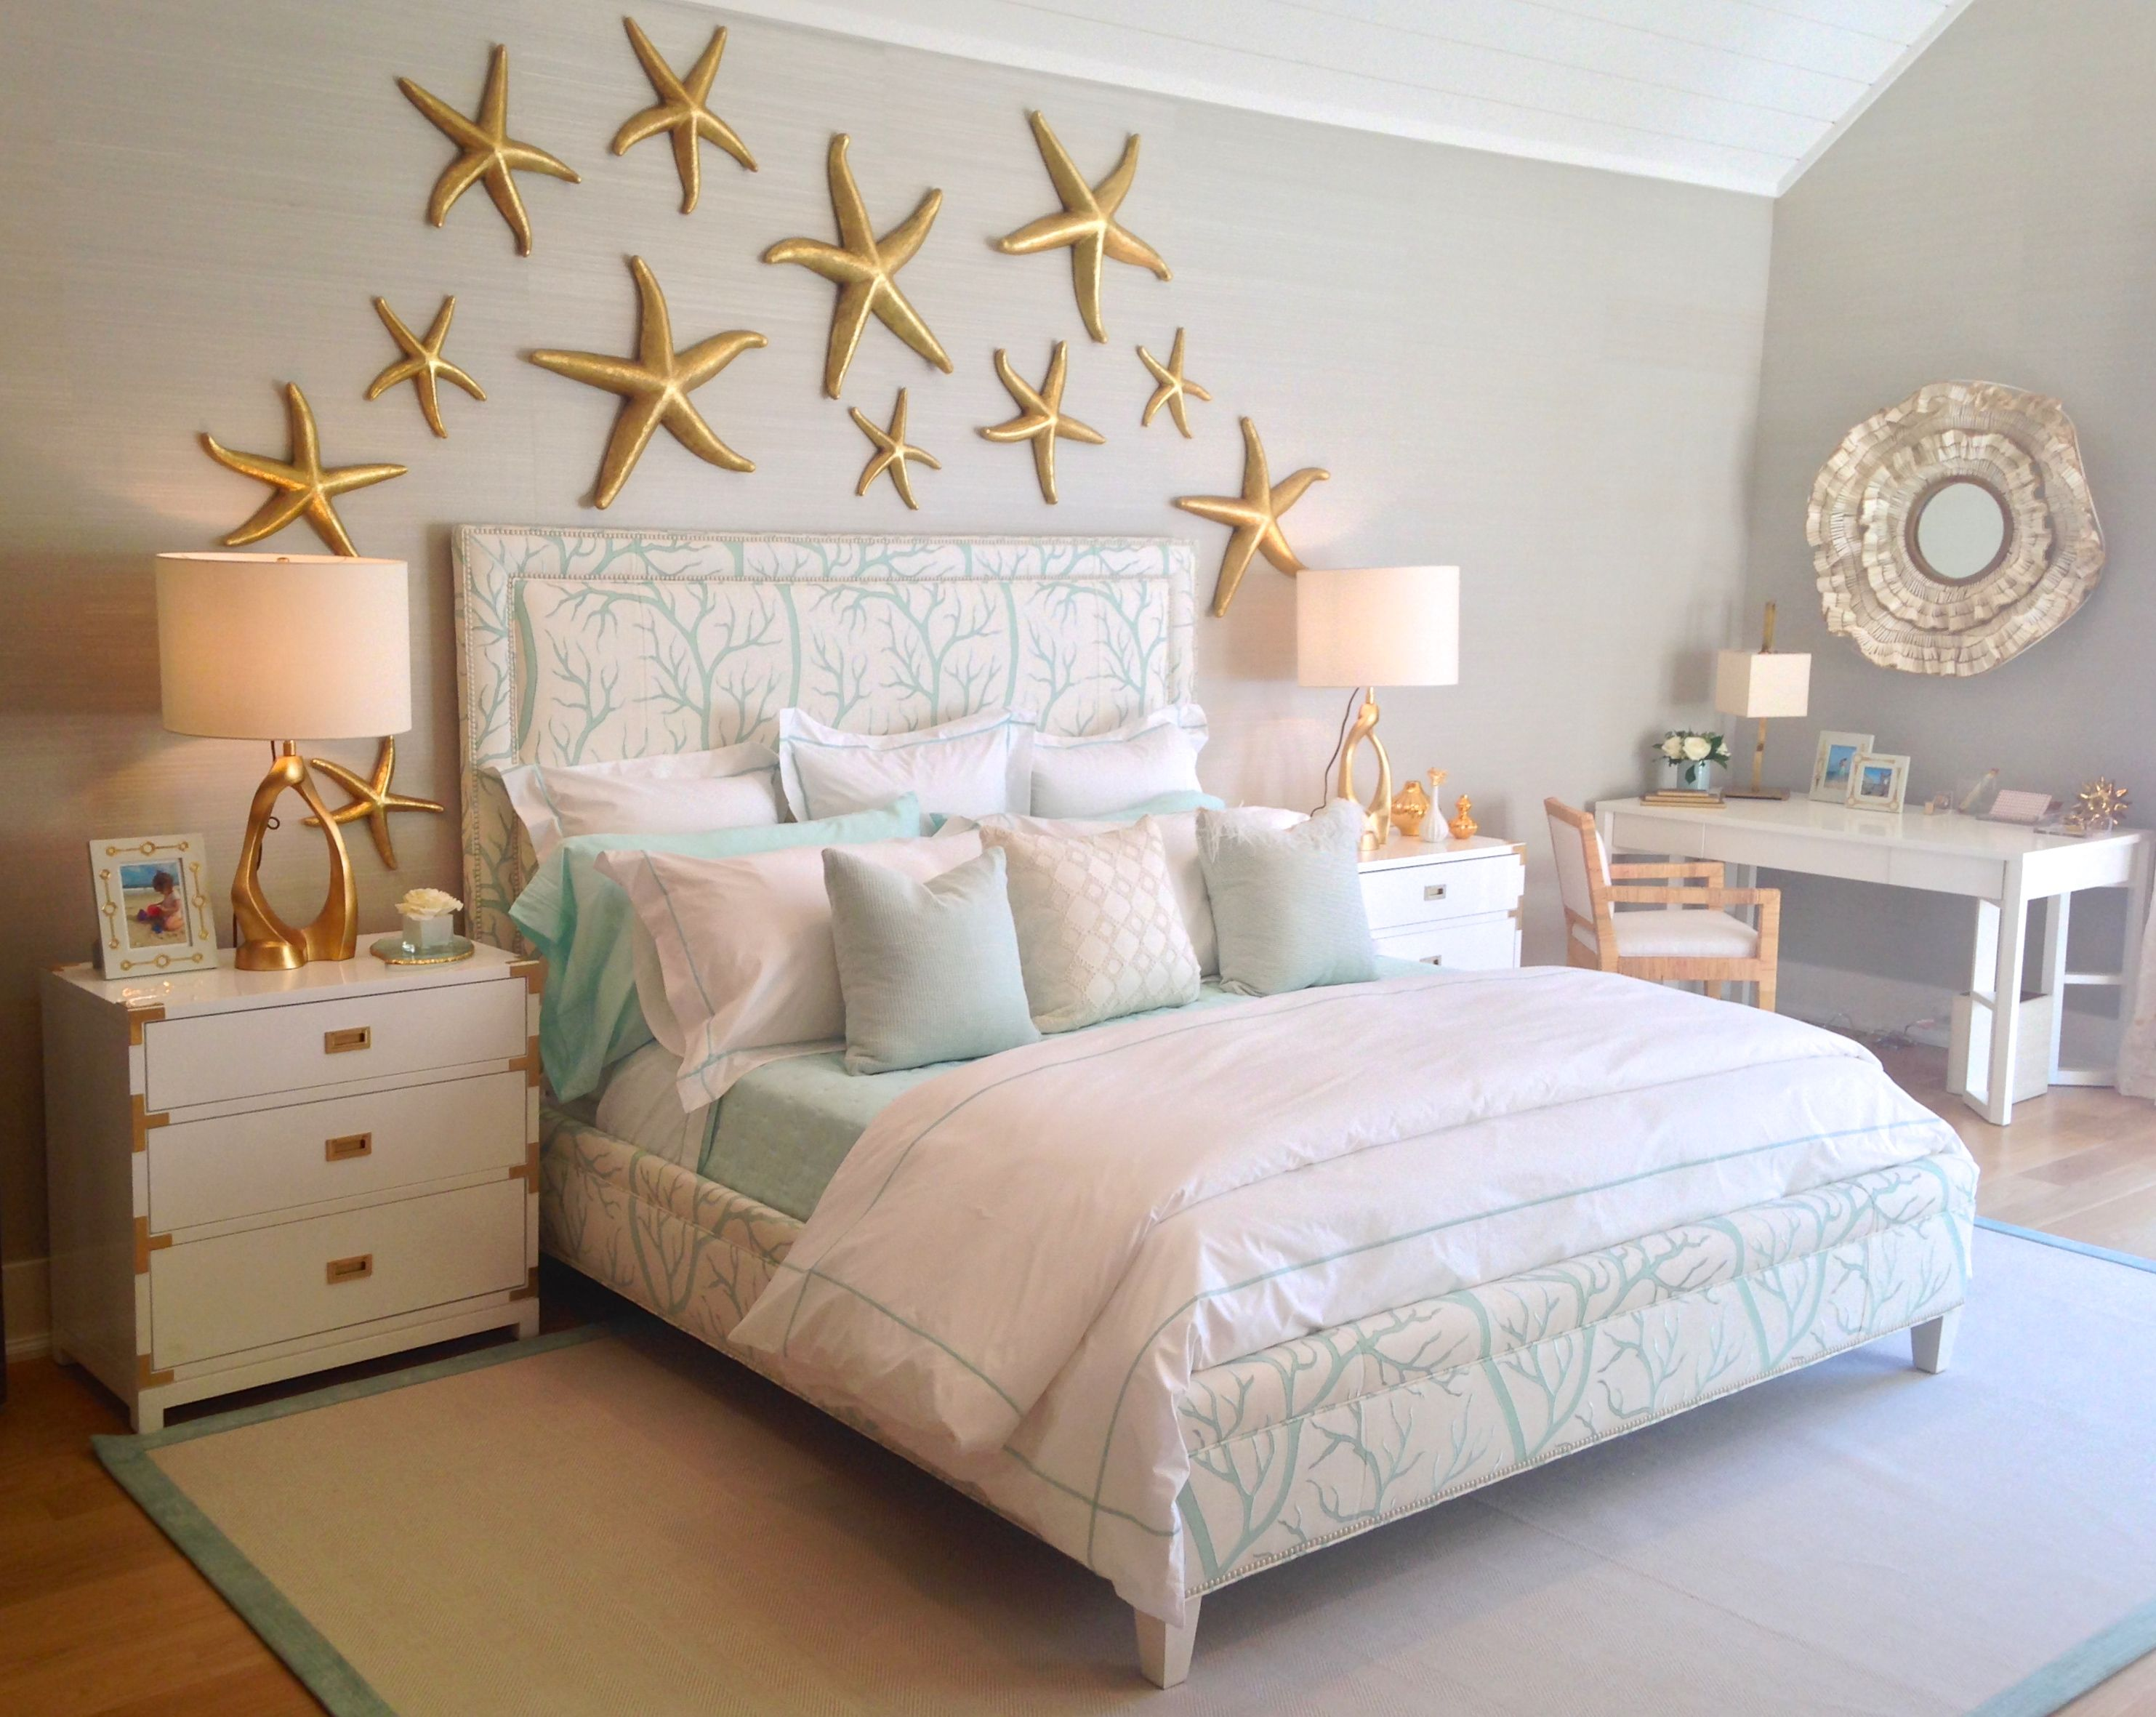 15 Best Images About Turquoise Room Decorations | Bedroom Decor ...